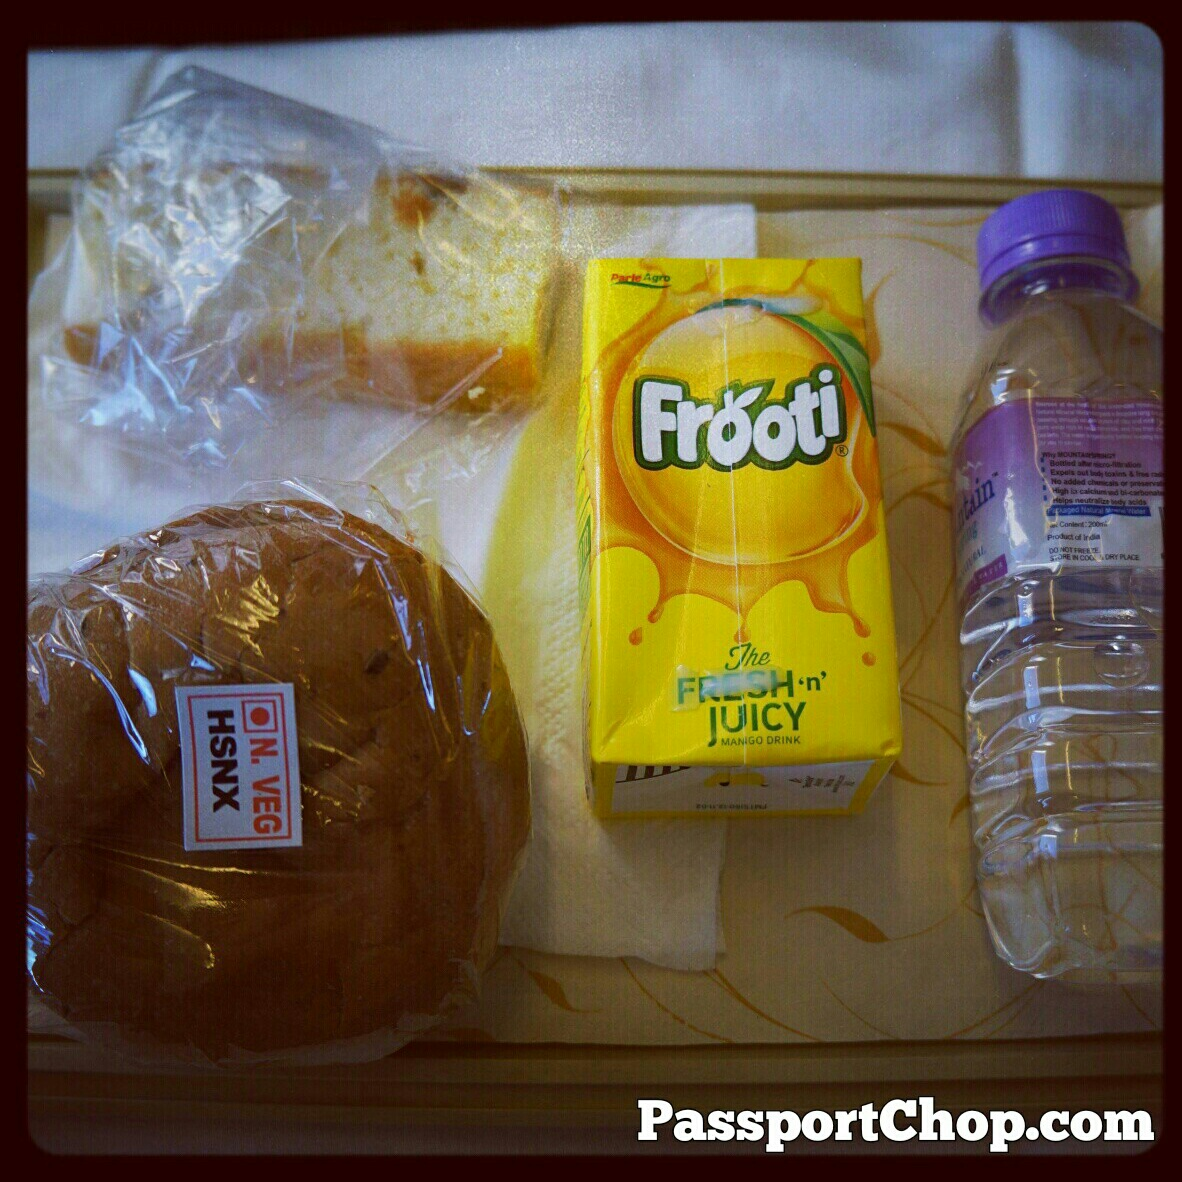 JetAirways jetKonnect Economy Class Flight to Srinagar inflight meals onboard sandwich juice cake